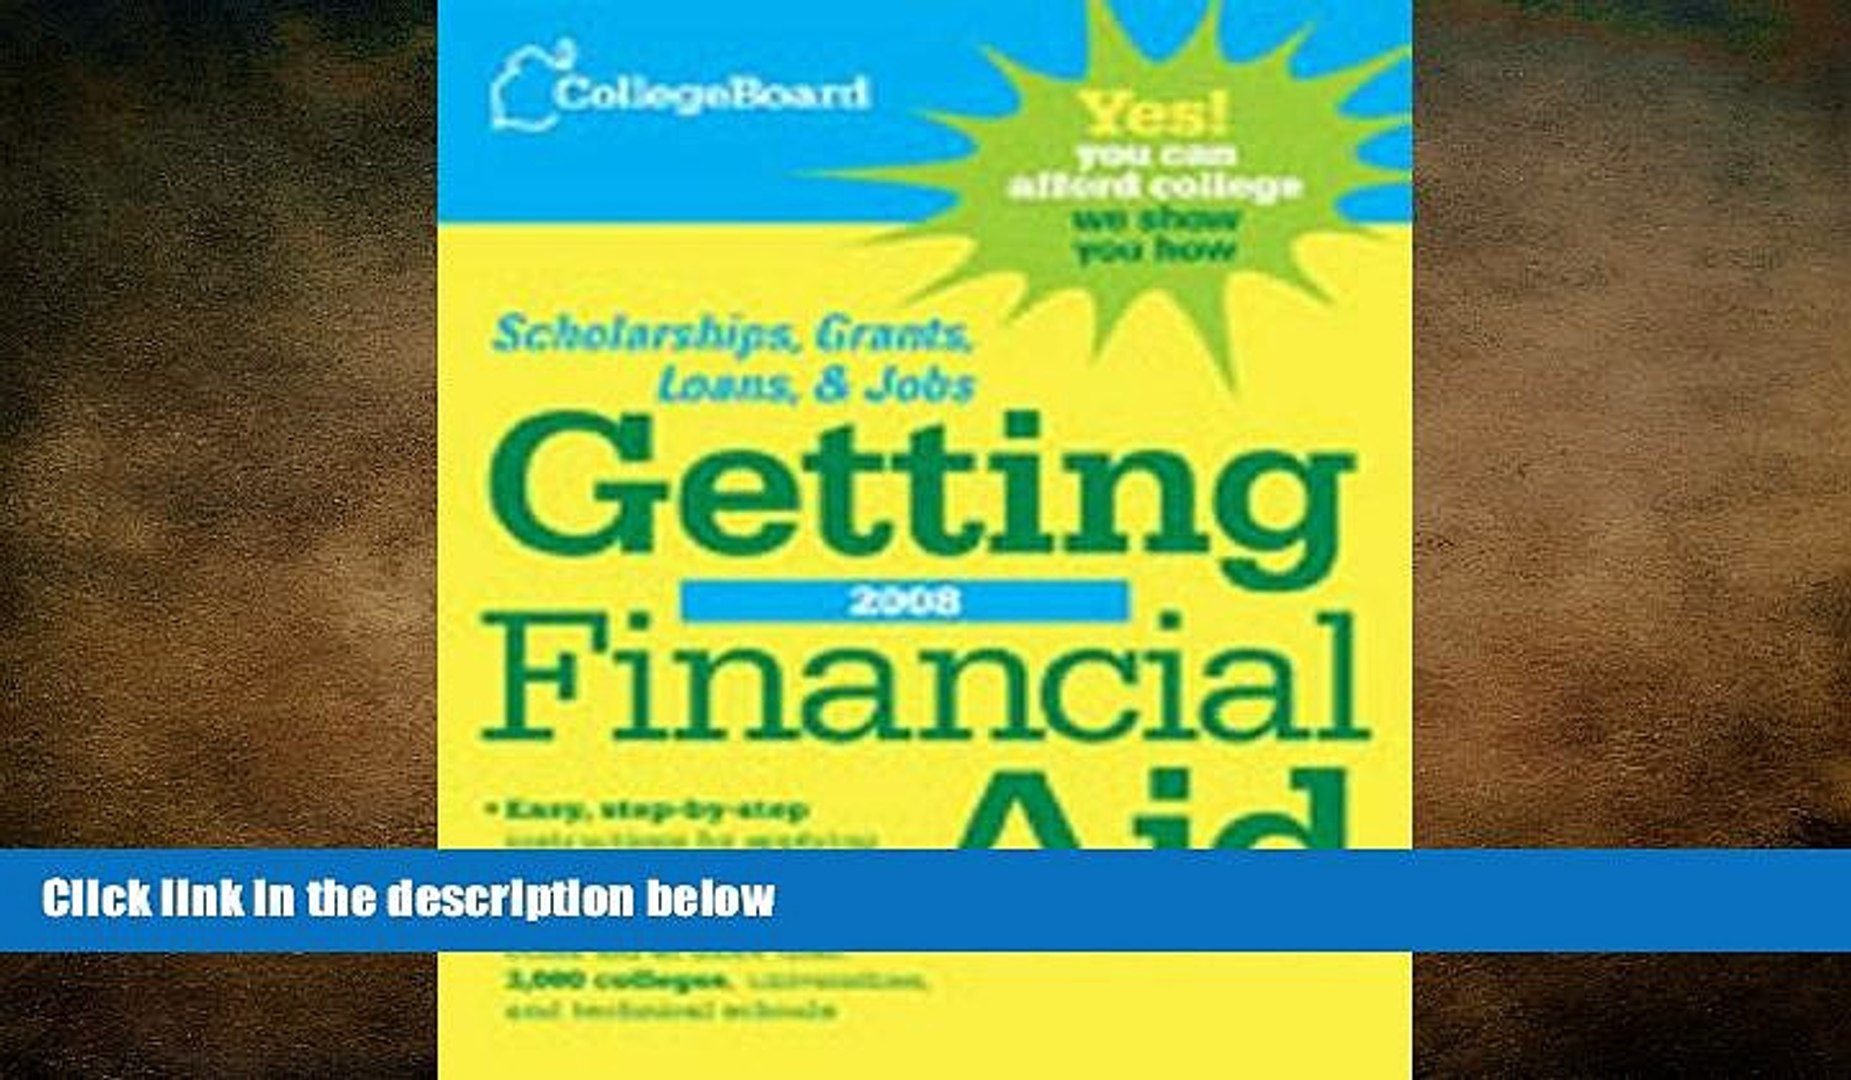 FAVORIT BOOK The College Board Getting Financial Aid 2008 (College Board Guide to Getting